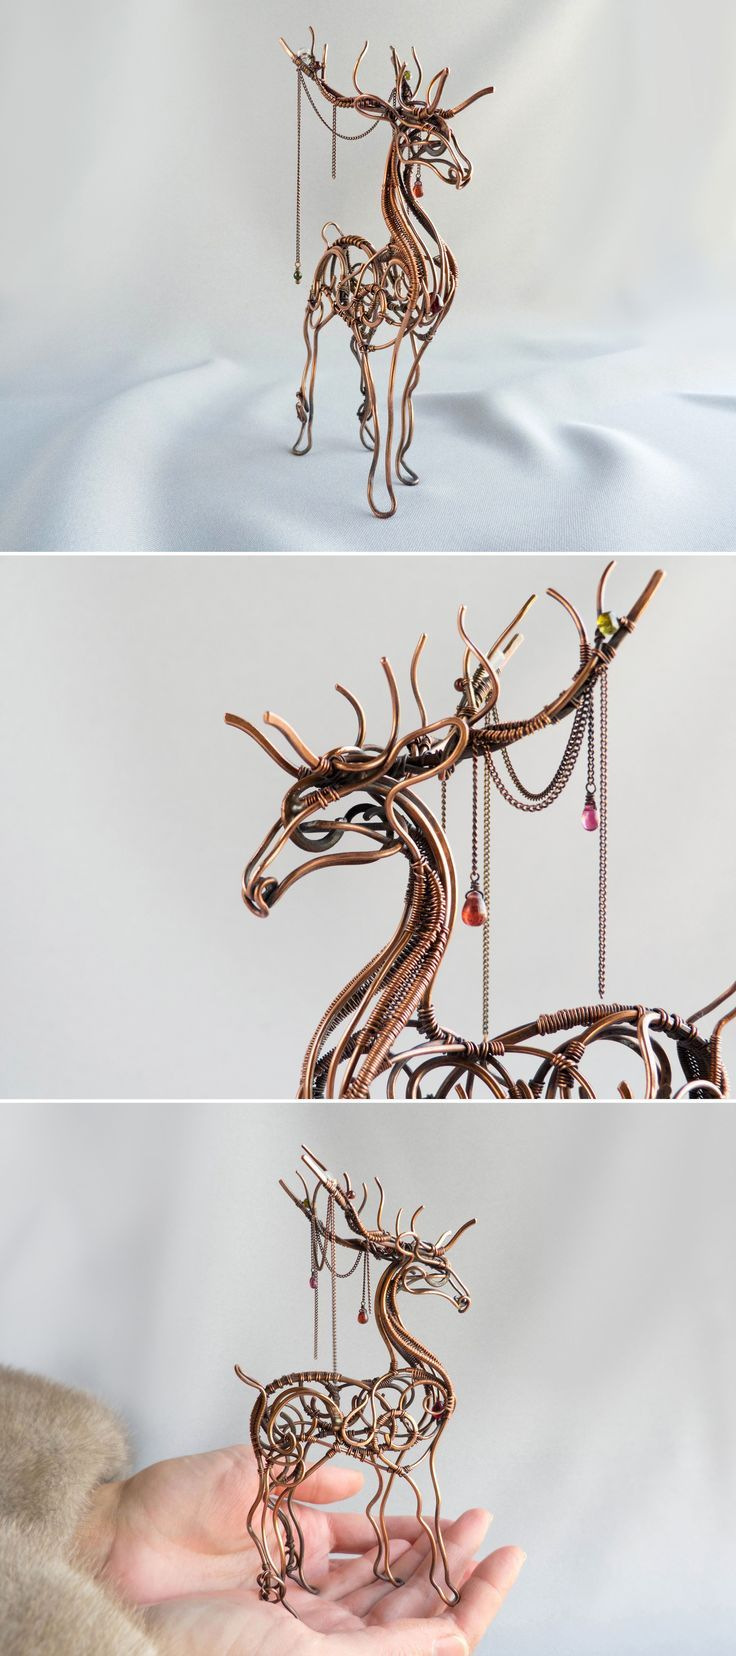 454 best Wire ✪ Art images on Pinterest | Wire crafts, Wire jewelry ...